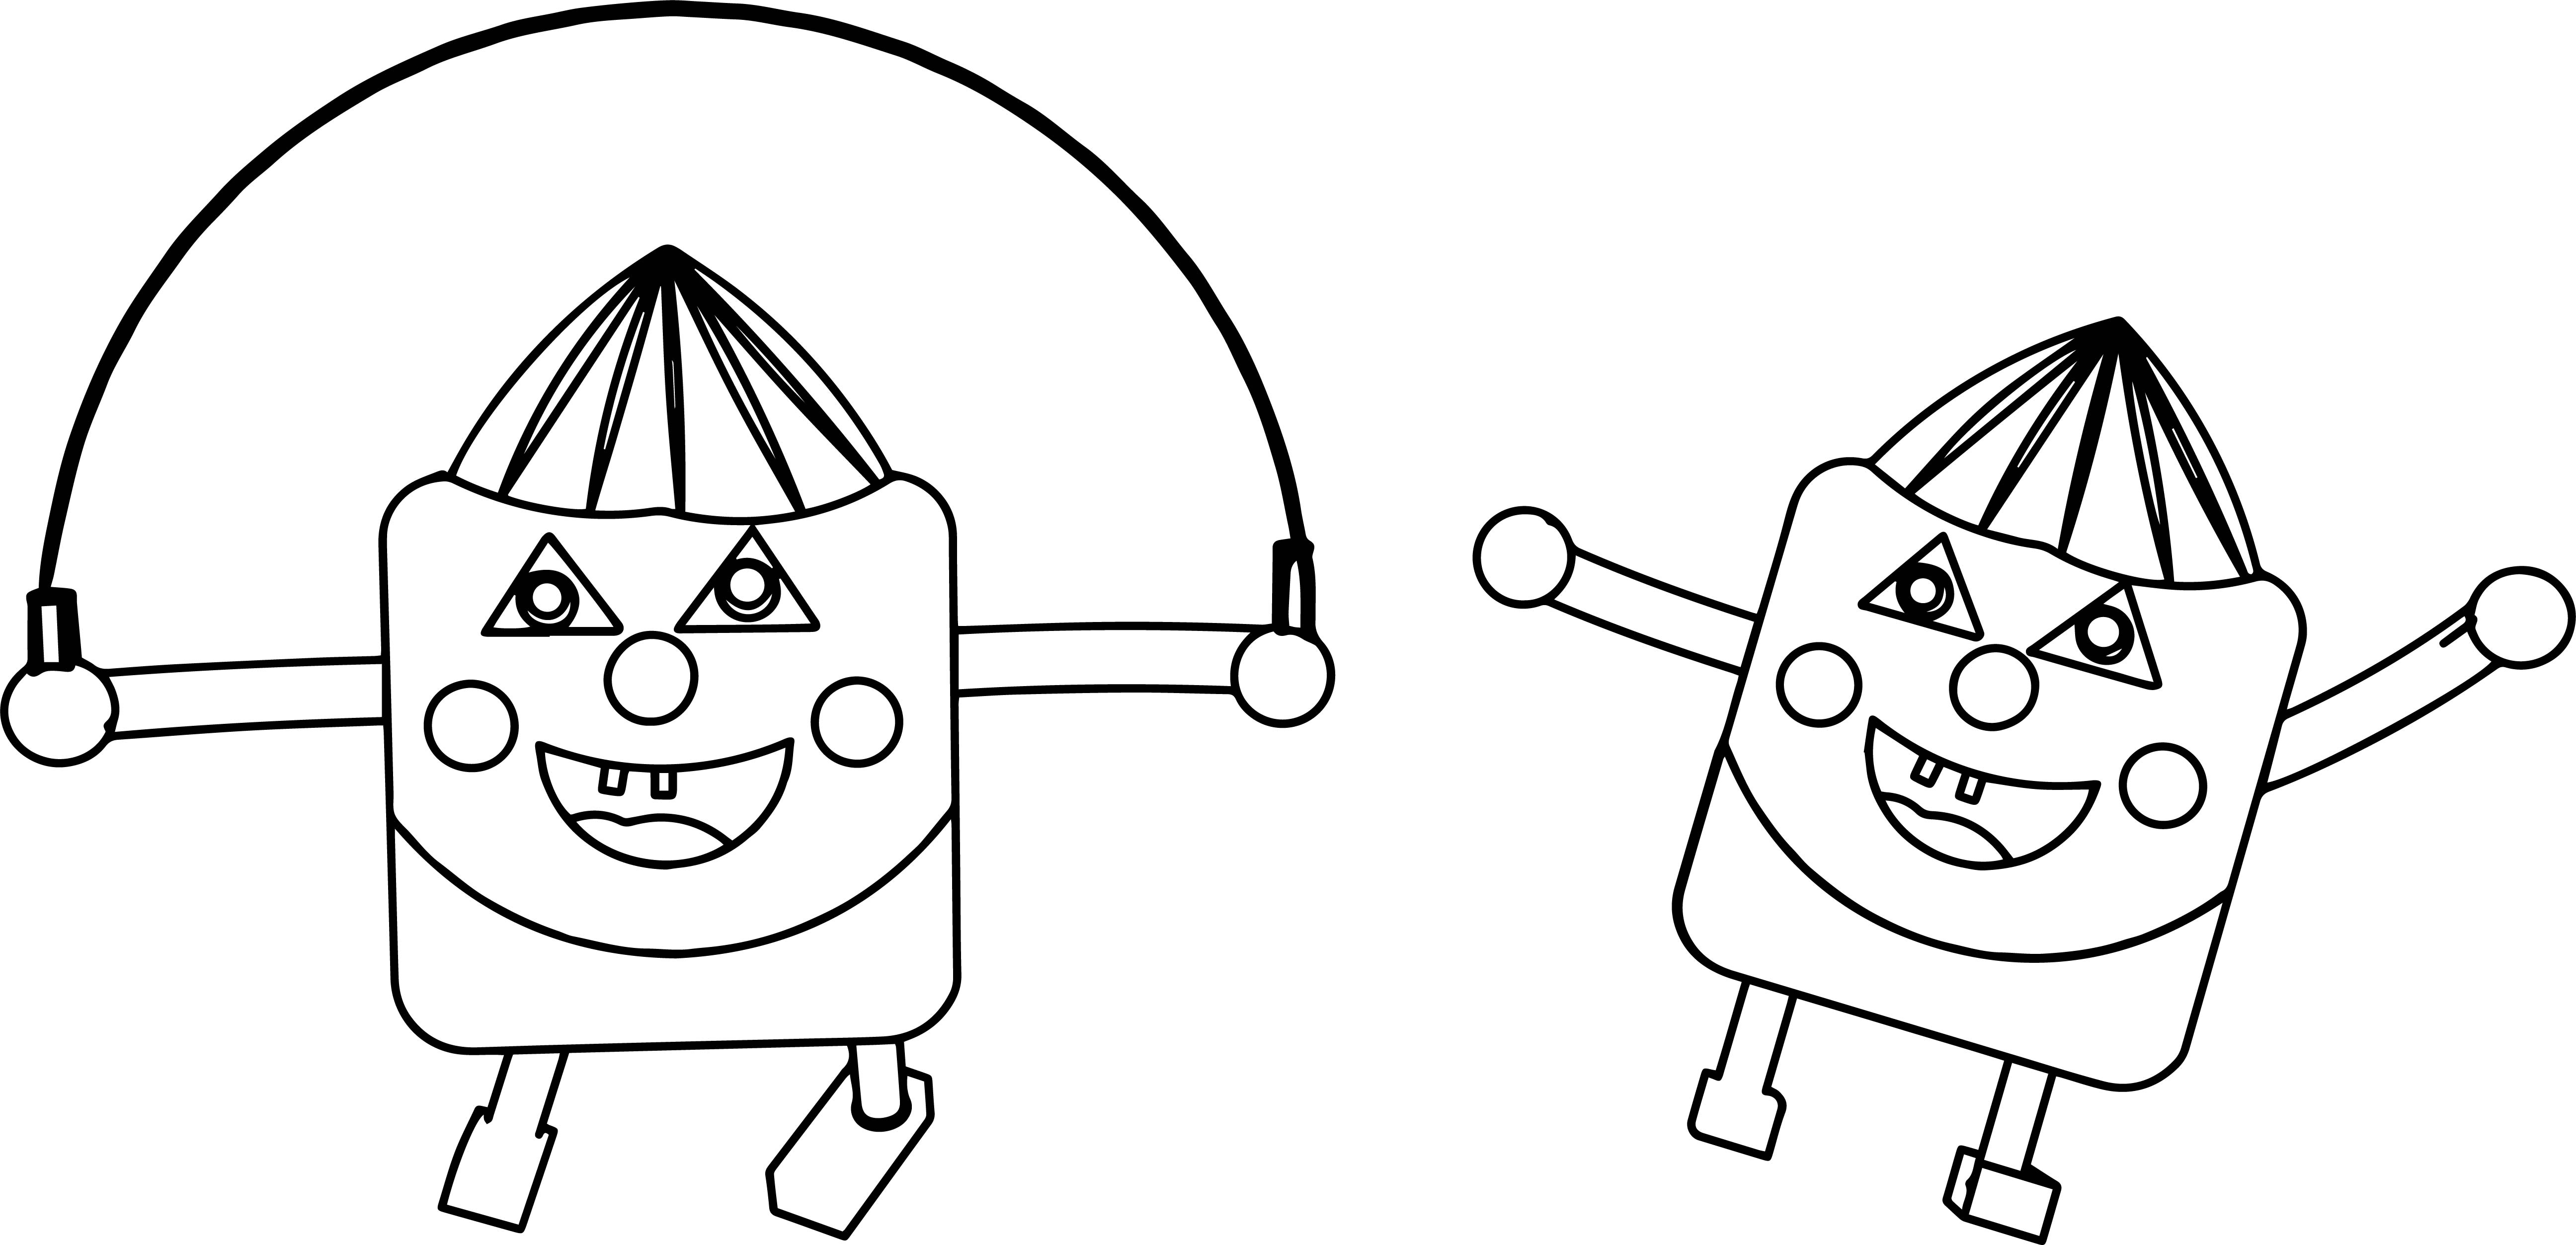 Cartoon Characters Coloring Page